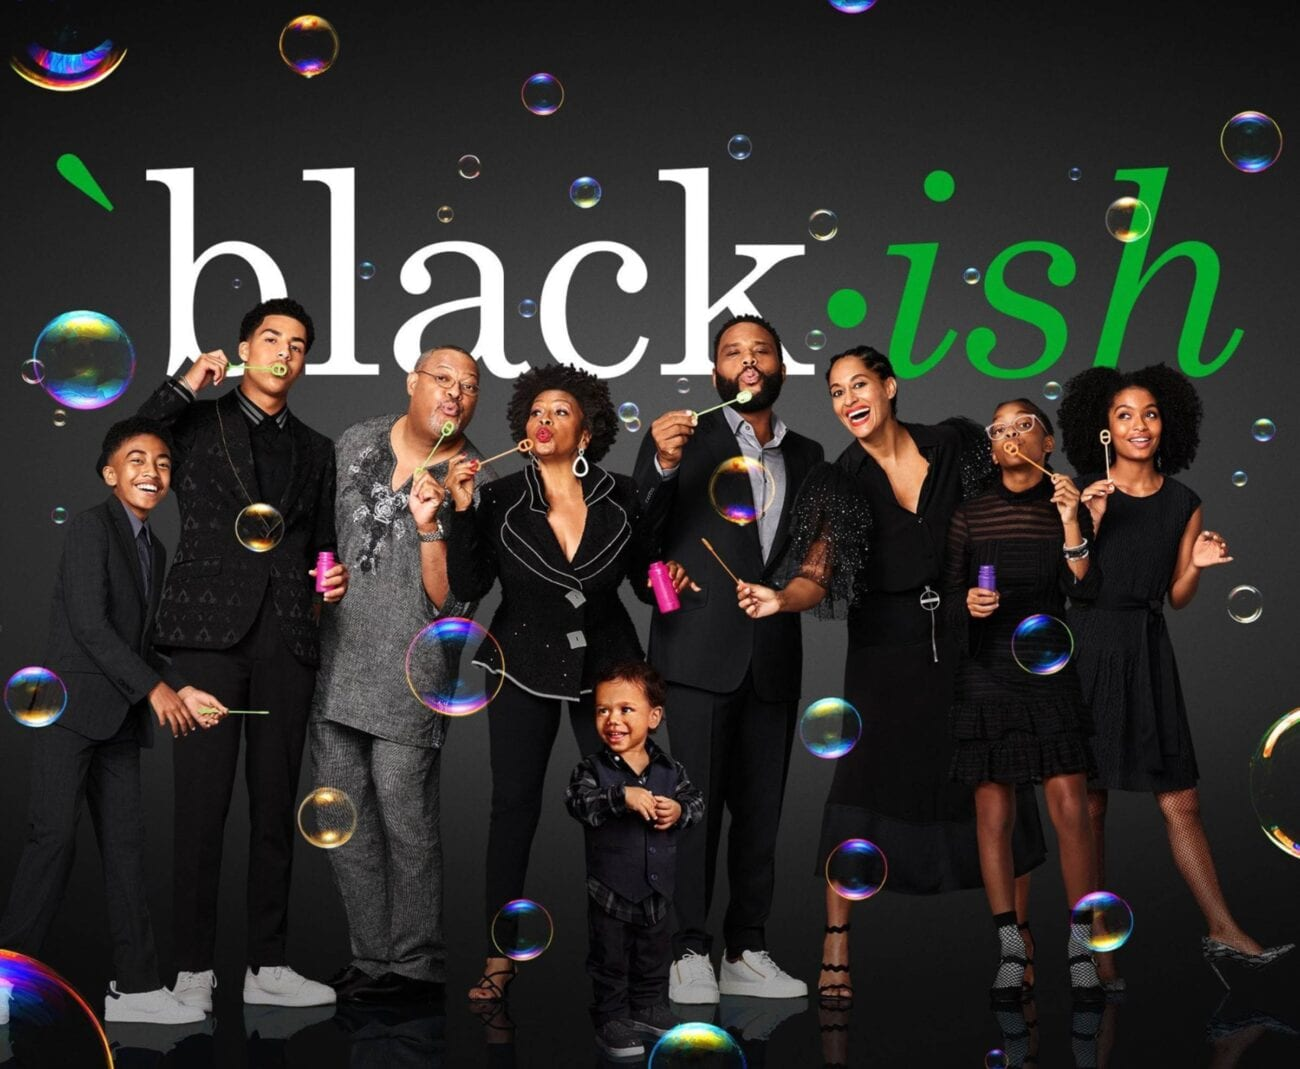 What's up with all these 'Black-ish' spinoffs? Read up on all the spinoffs no one asked for and let us know if you like them, or wish they'd stop.